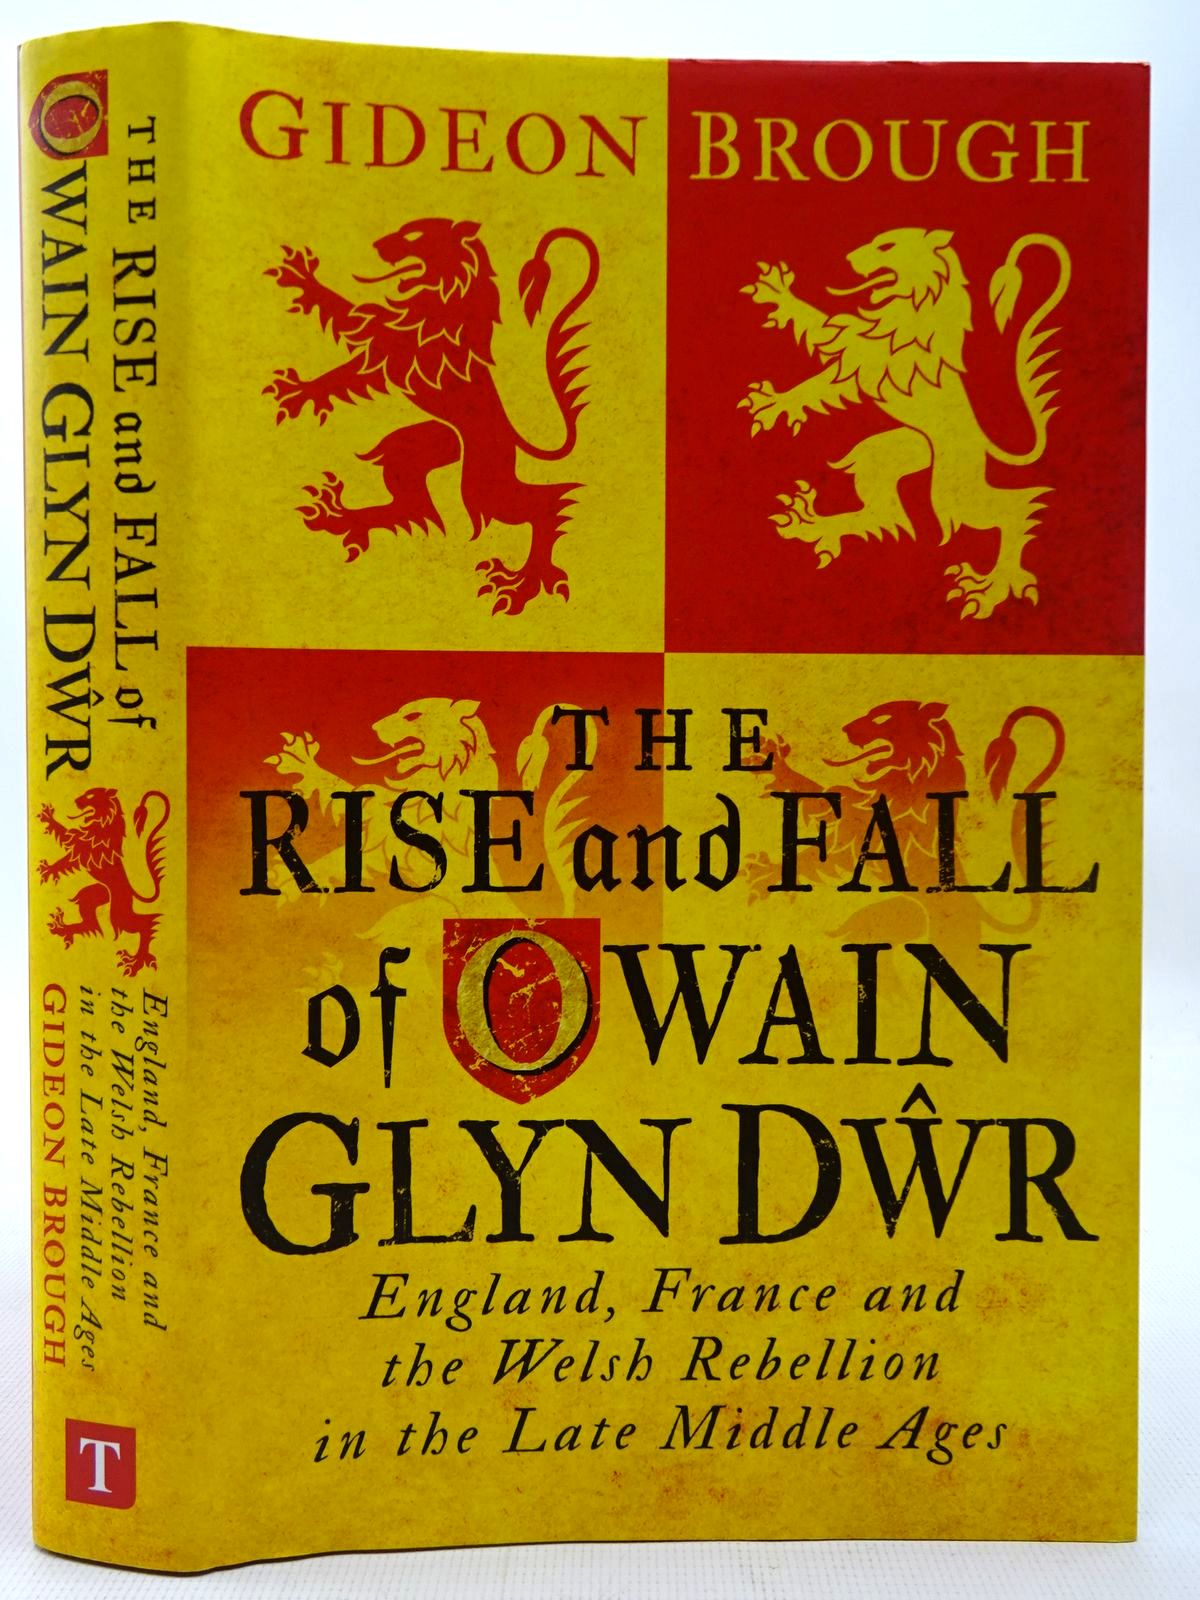 Photo of THE RISE AND FALL OF OWAIN GLYN DWR written by Brough, Gideon published by I.B. Tauris & Co. Ltd. (STOCK CODE: 2126854)  for sale by Stella & Rose's Books